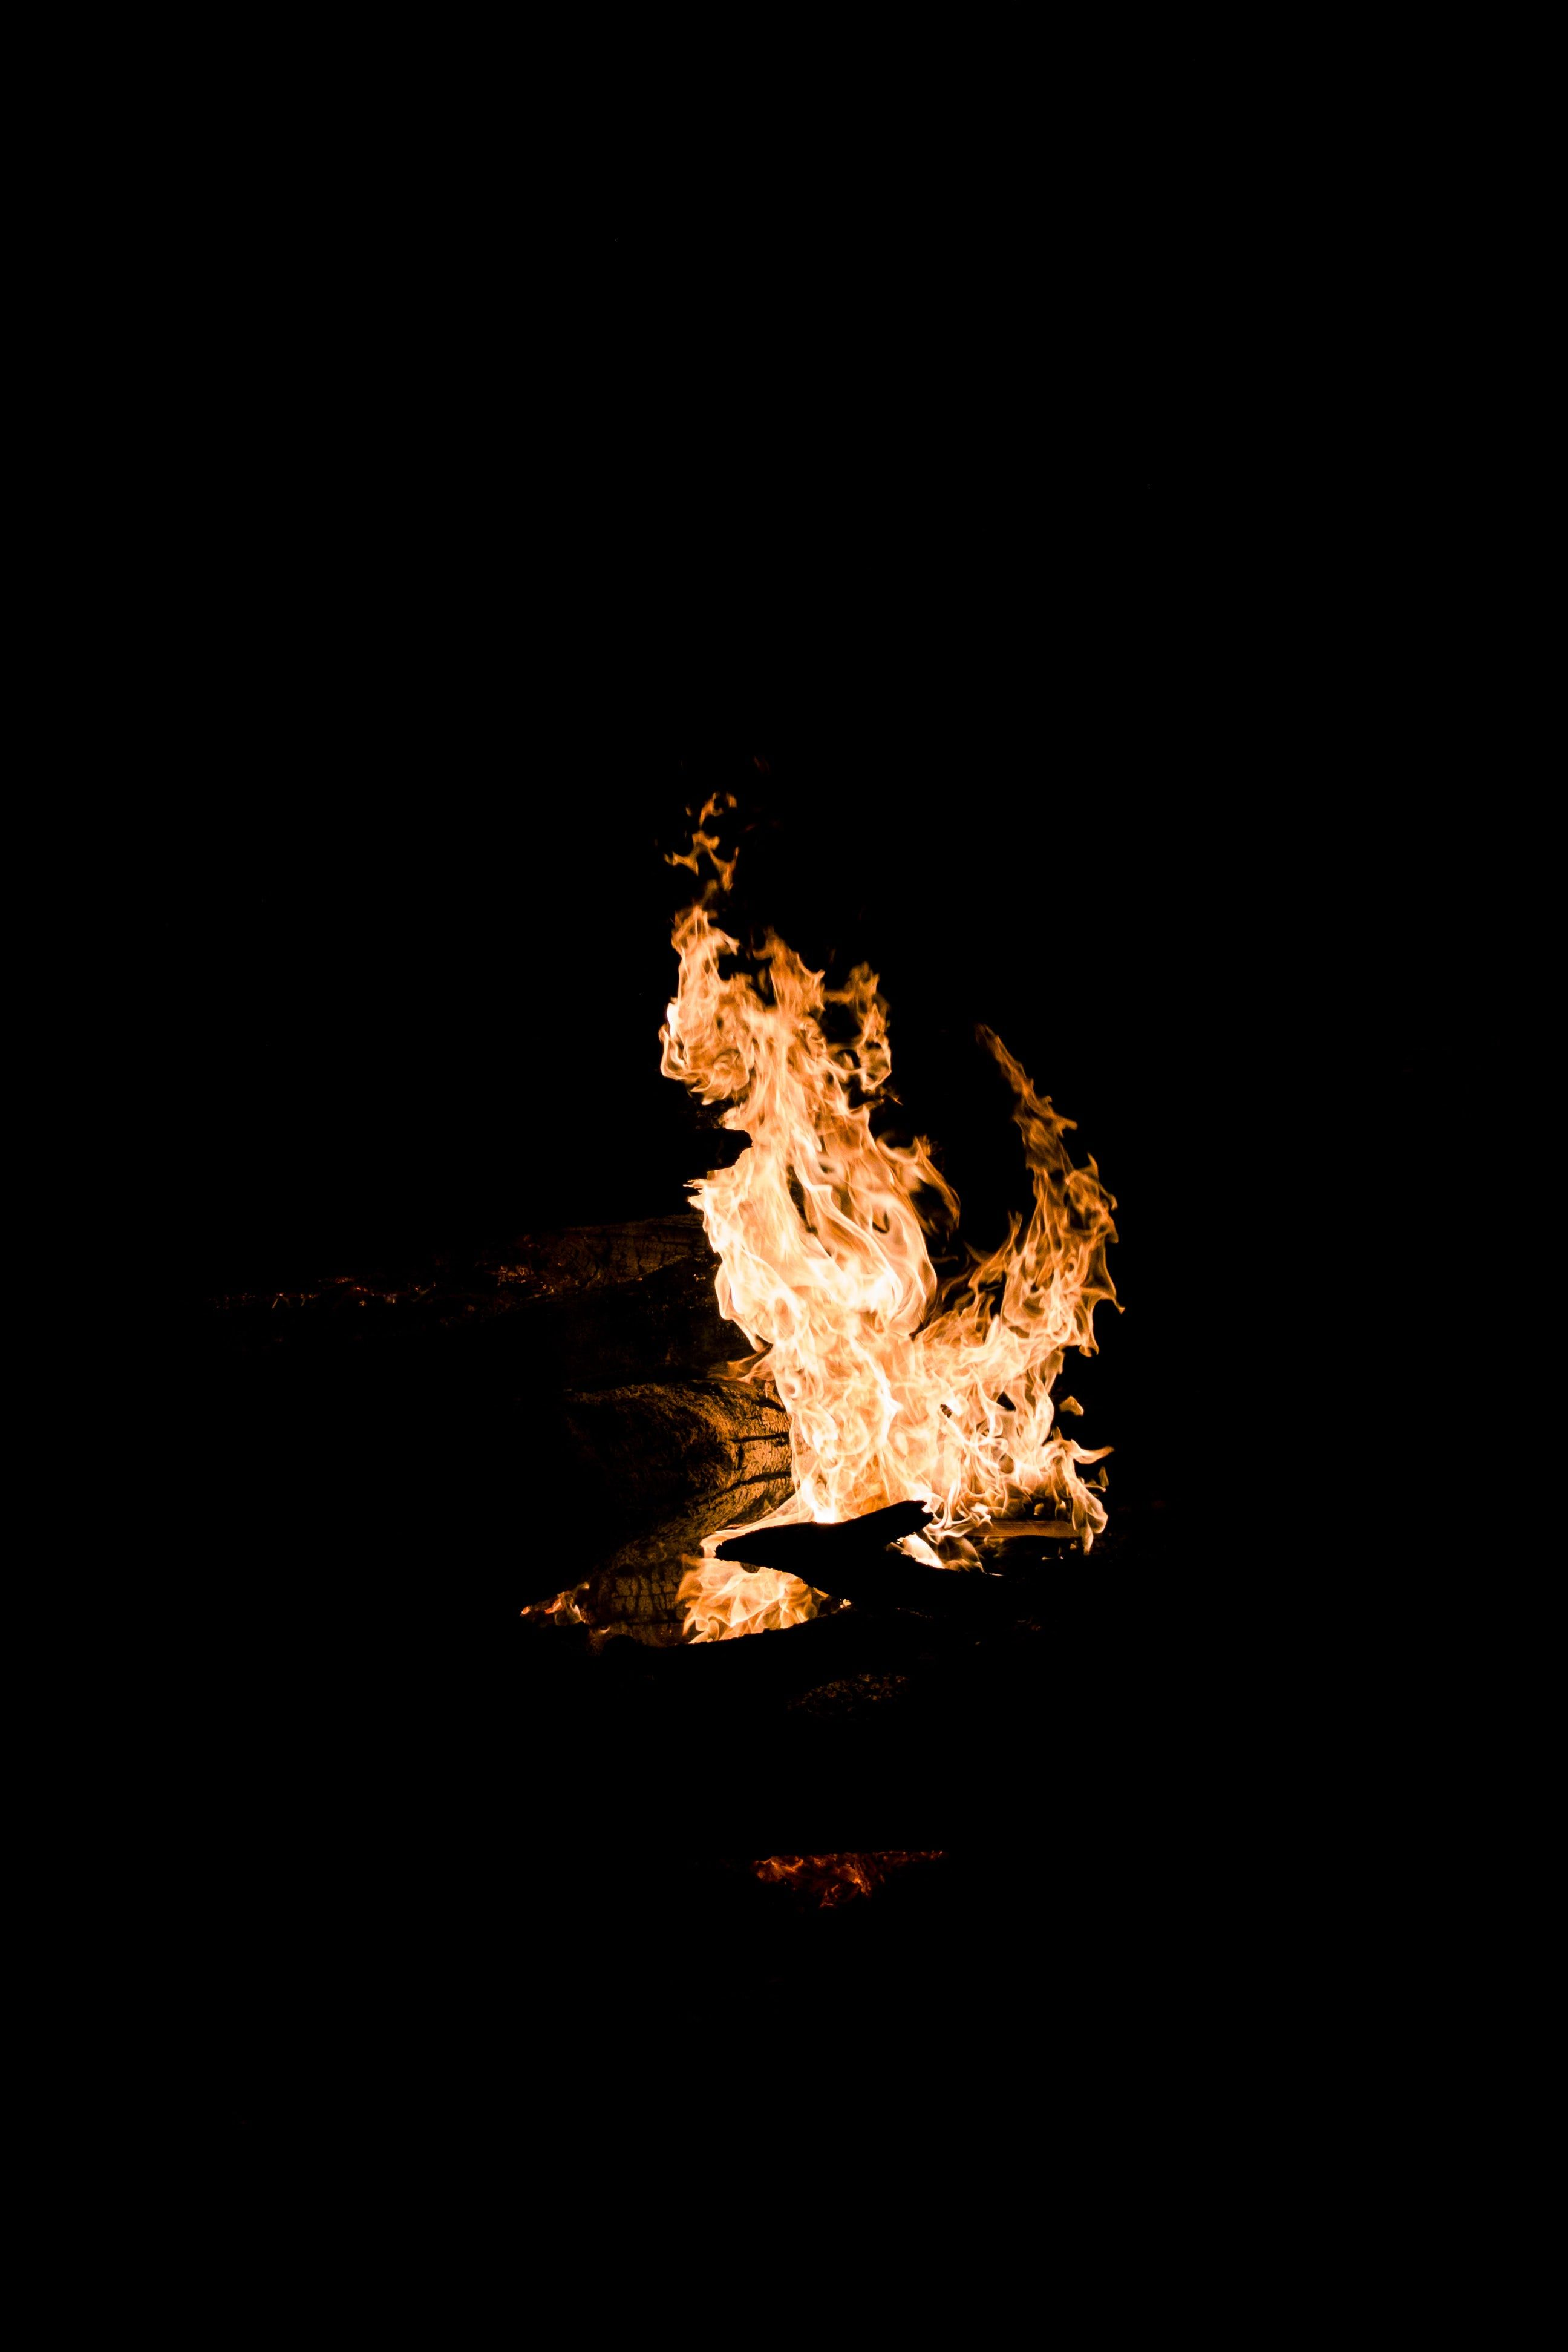 Witch Pictures Download Free Images On Unsplash Witch Pictures Black Magic Love Spells Flames